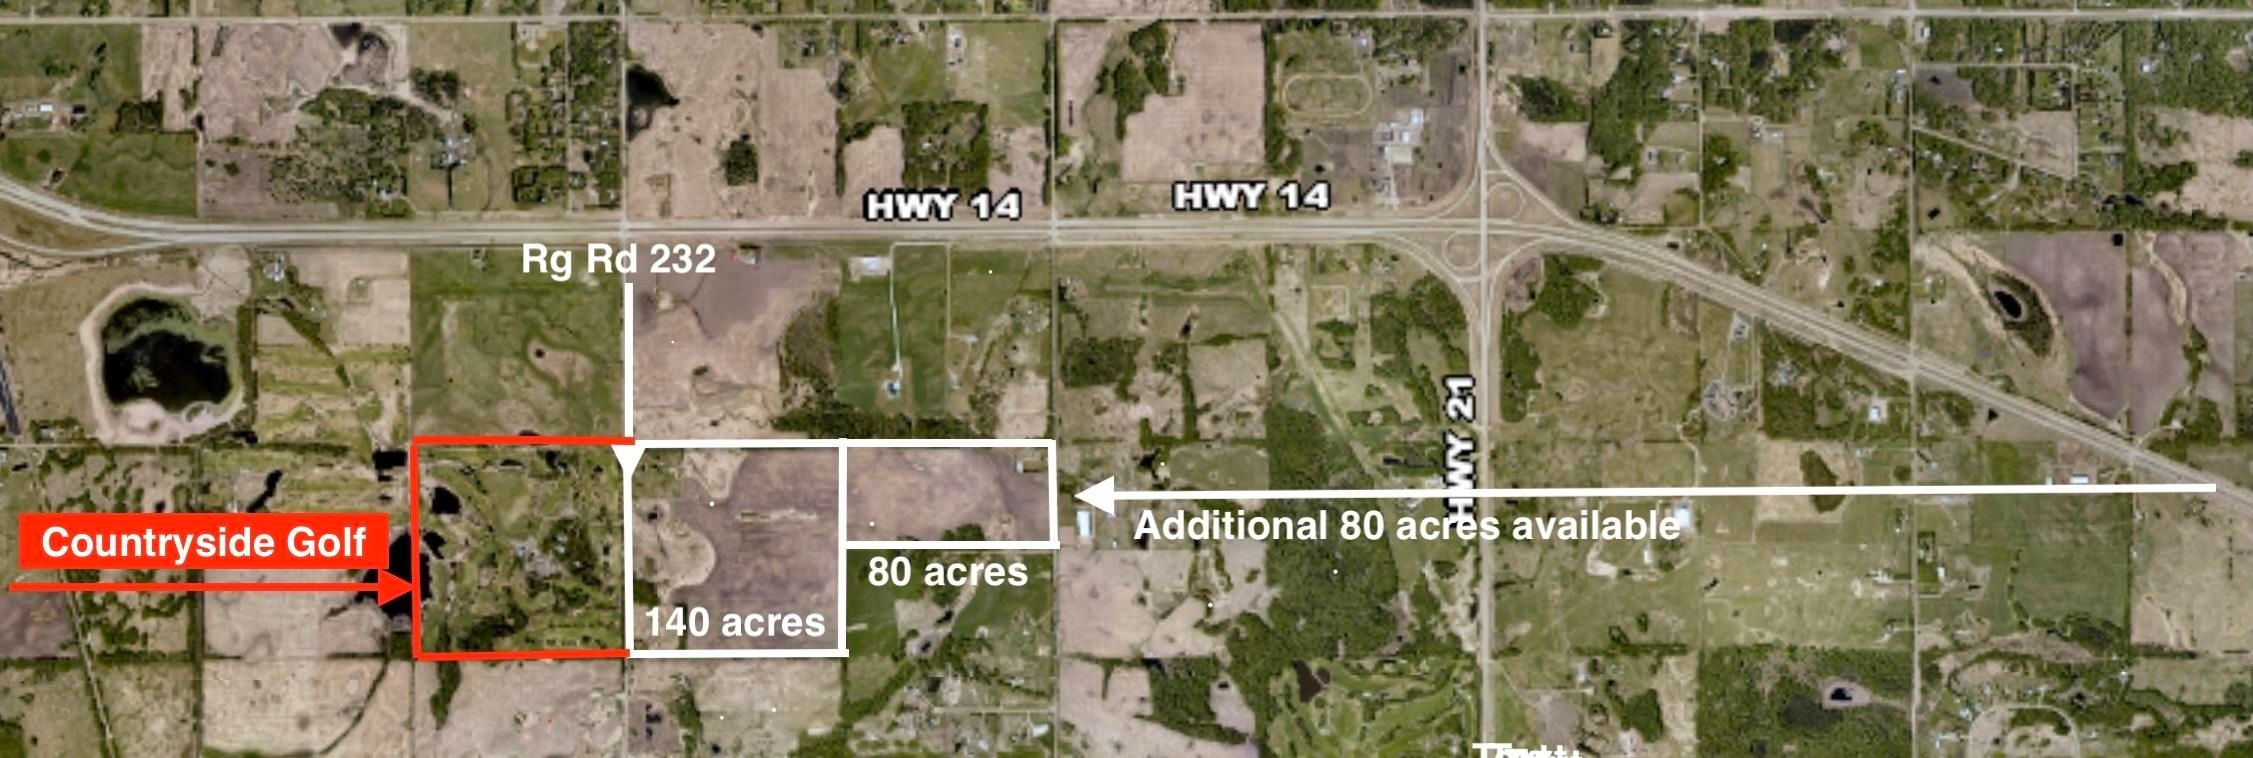 Main Photo: 51478 Rg Rd 231: Rural Strathcona County Rural Land/Vacant Lot for sale : MLS®# E4263127